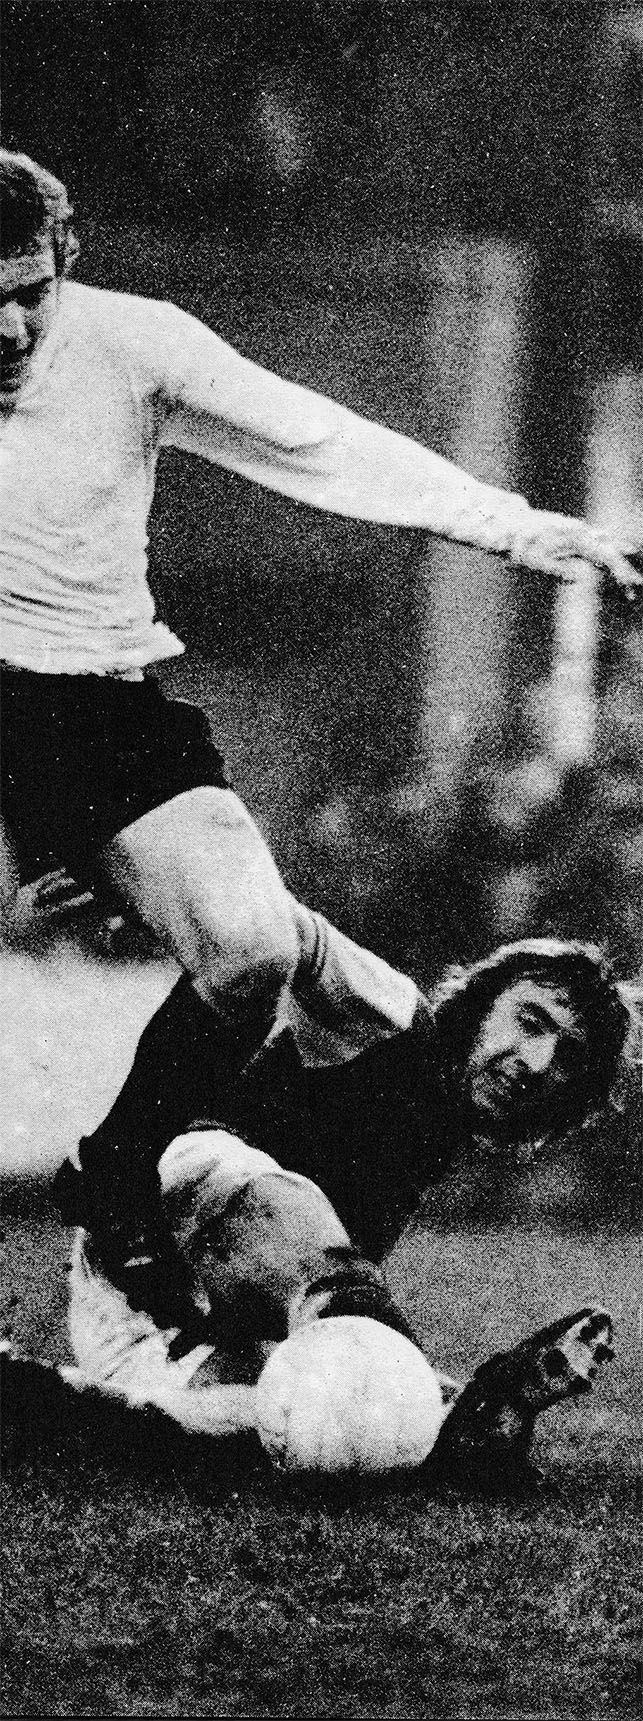 16th December 1972. West Ham United all action midfielder Billy Bonds tackling Stoke City and Wales star John Mahoney, at White Hart Lane.